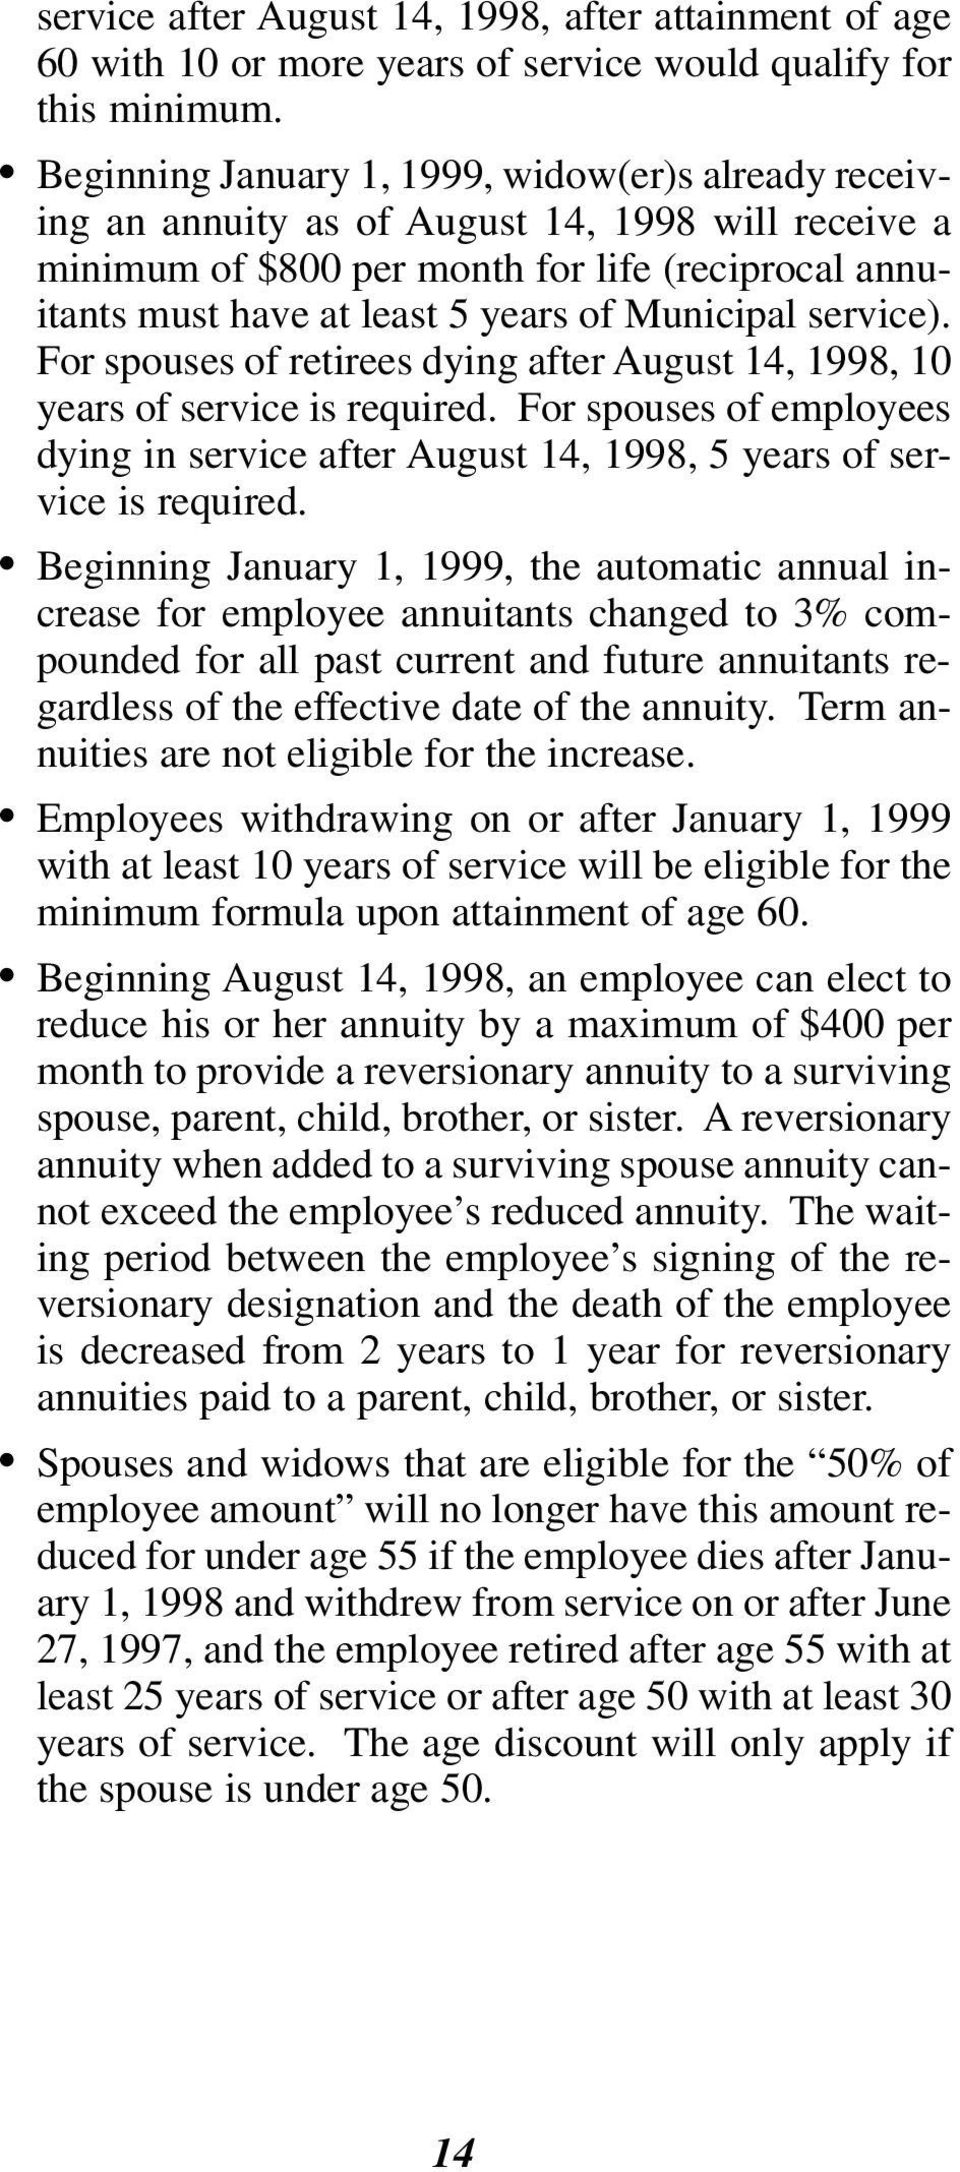 Municipal service). For spouses of retirees dying after August 14, 1998, 10 years of service is required.